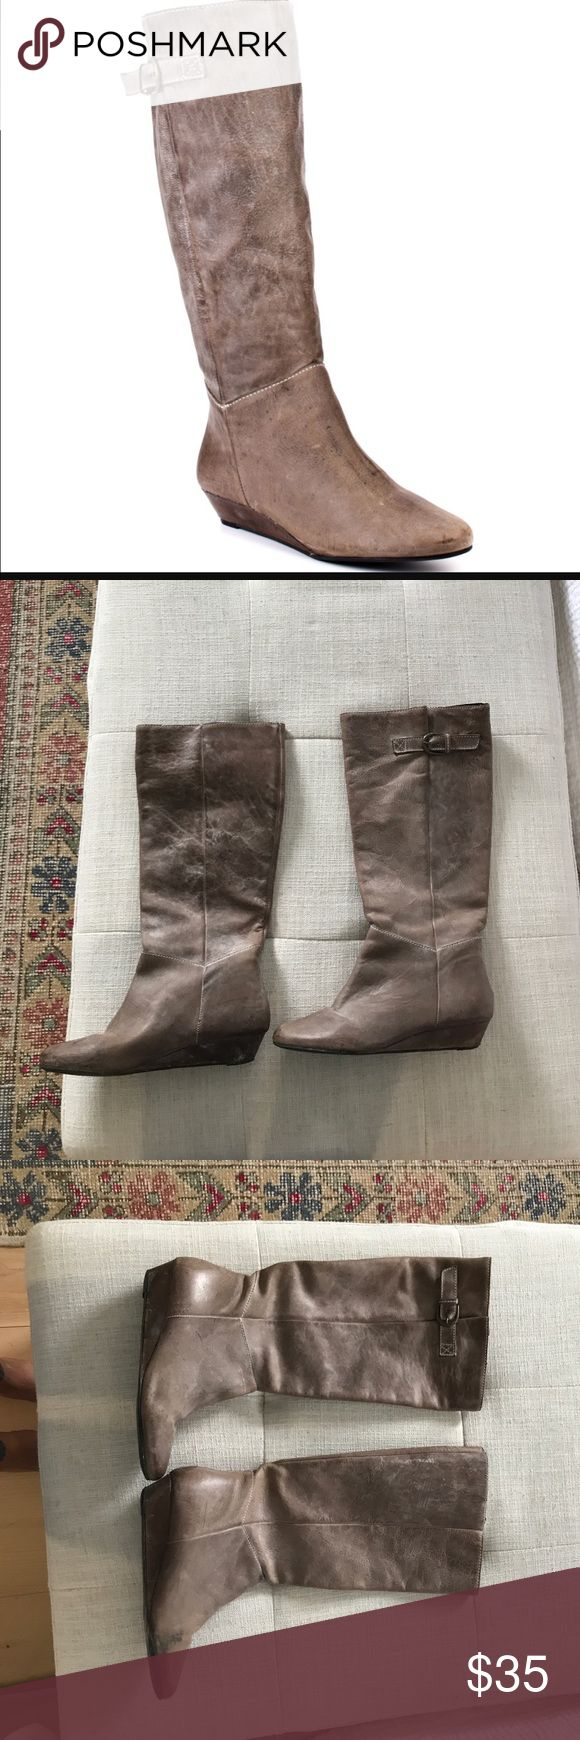 Steve Madden Intyce boot in Stone See photos, a few scuffs on the heels otherwise in good shape! Steve Madden Shoes Winter & Rain Boots